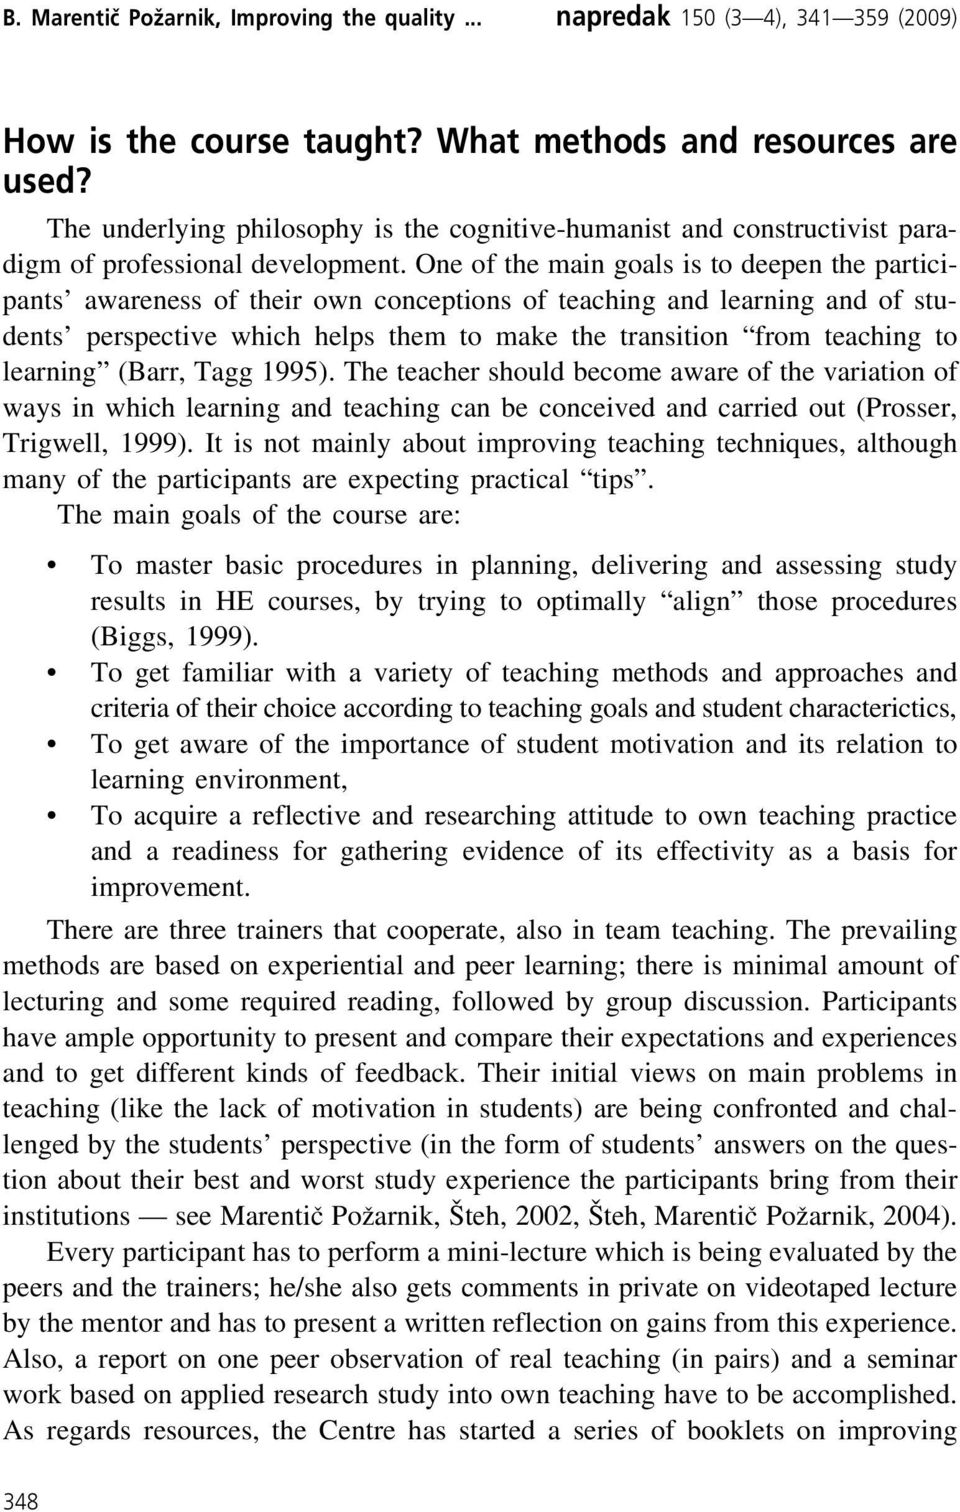 learning (Barr, Tagg 1995). The teacher should become aware of the variation of ways in which learning and teaching can be conceived and carried out (Prosser, Trigwell, 1999).